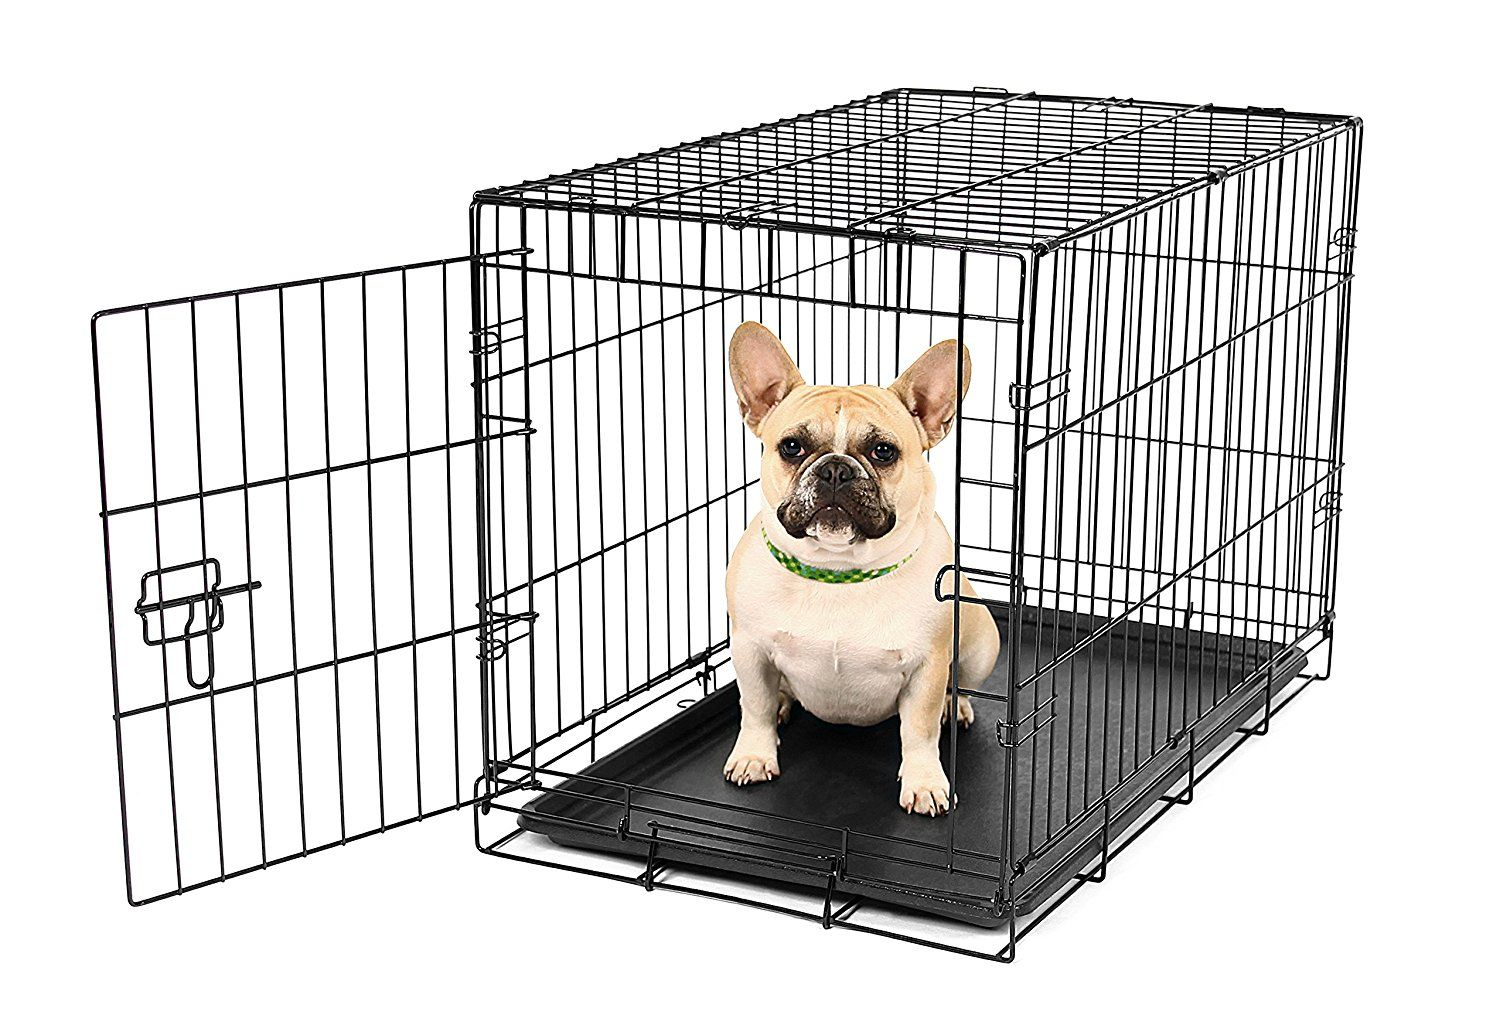 Carlson Secure And Compact Single Door Metal Dog Crate Small Quickly View This Special Dog Product Cl Small Dog Crate Wire Dog Crates Dog Cages